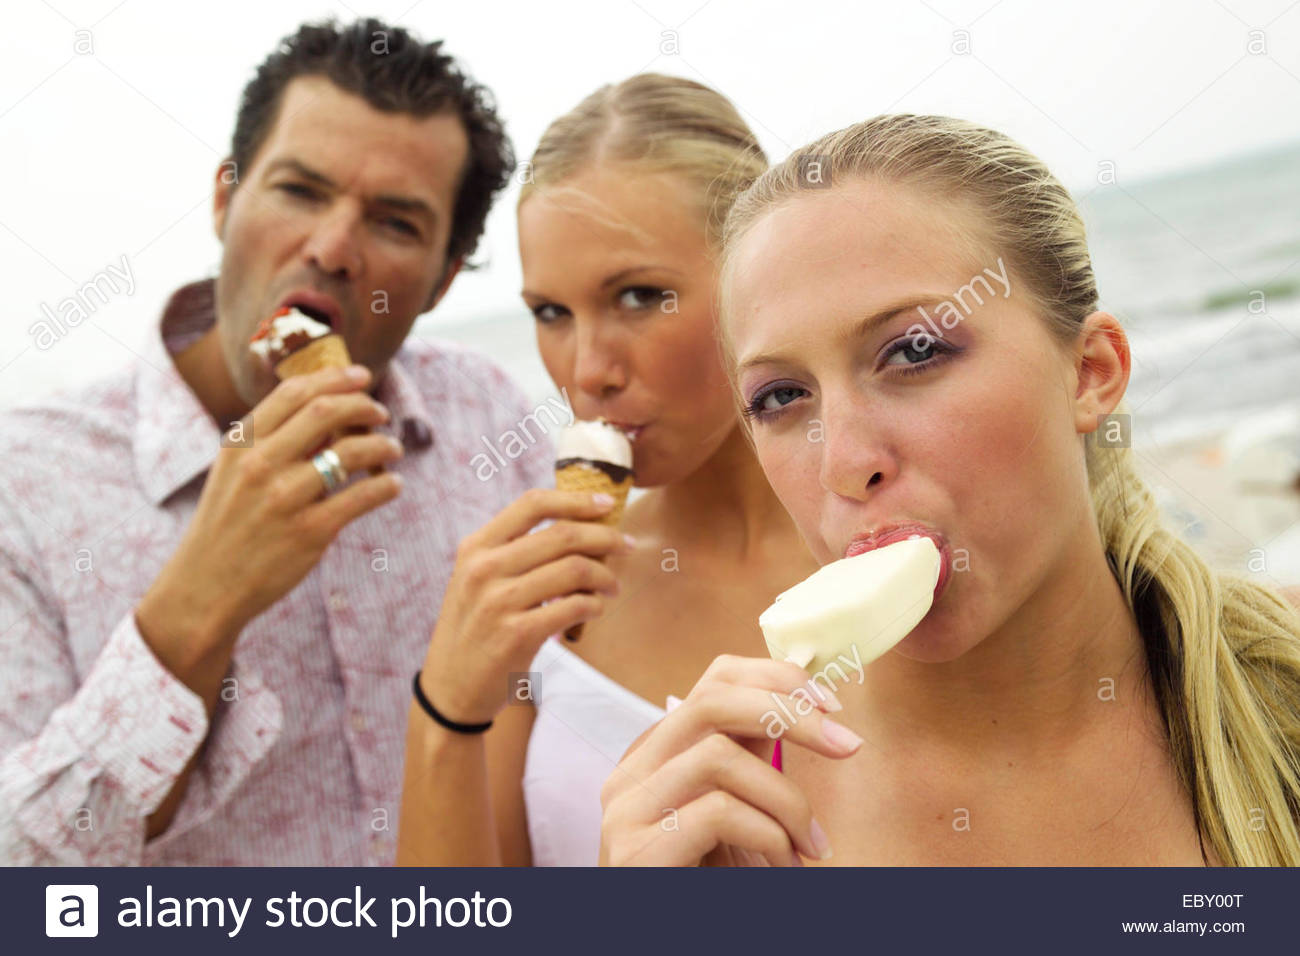 man with two blondes eating ice cream - Stock Image